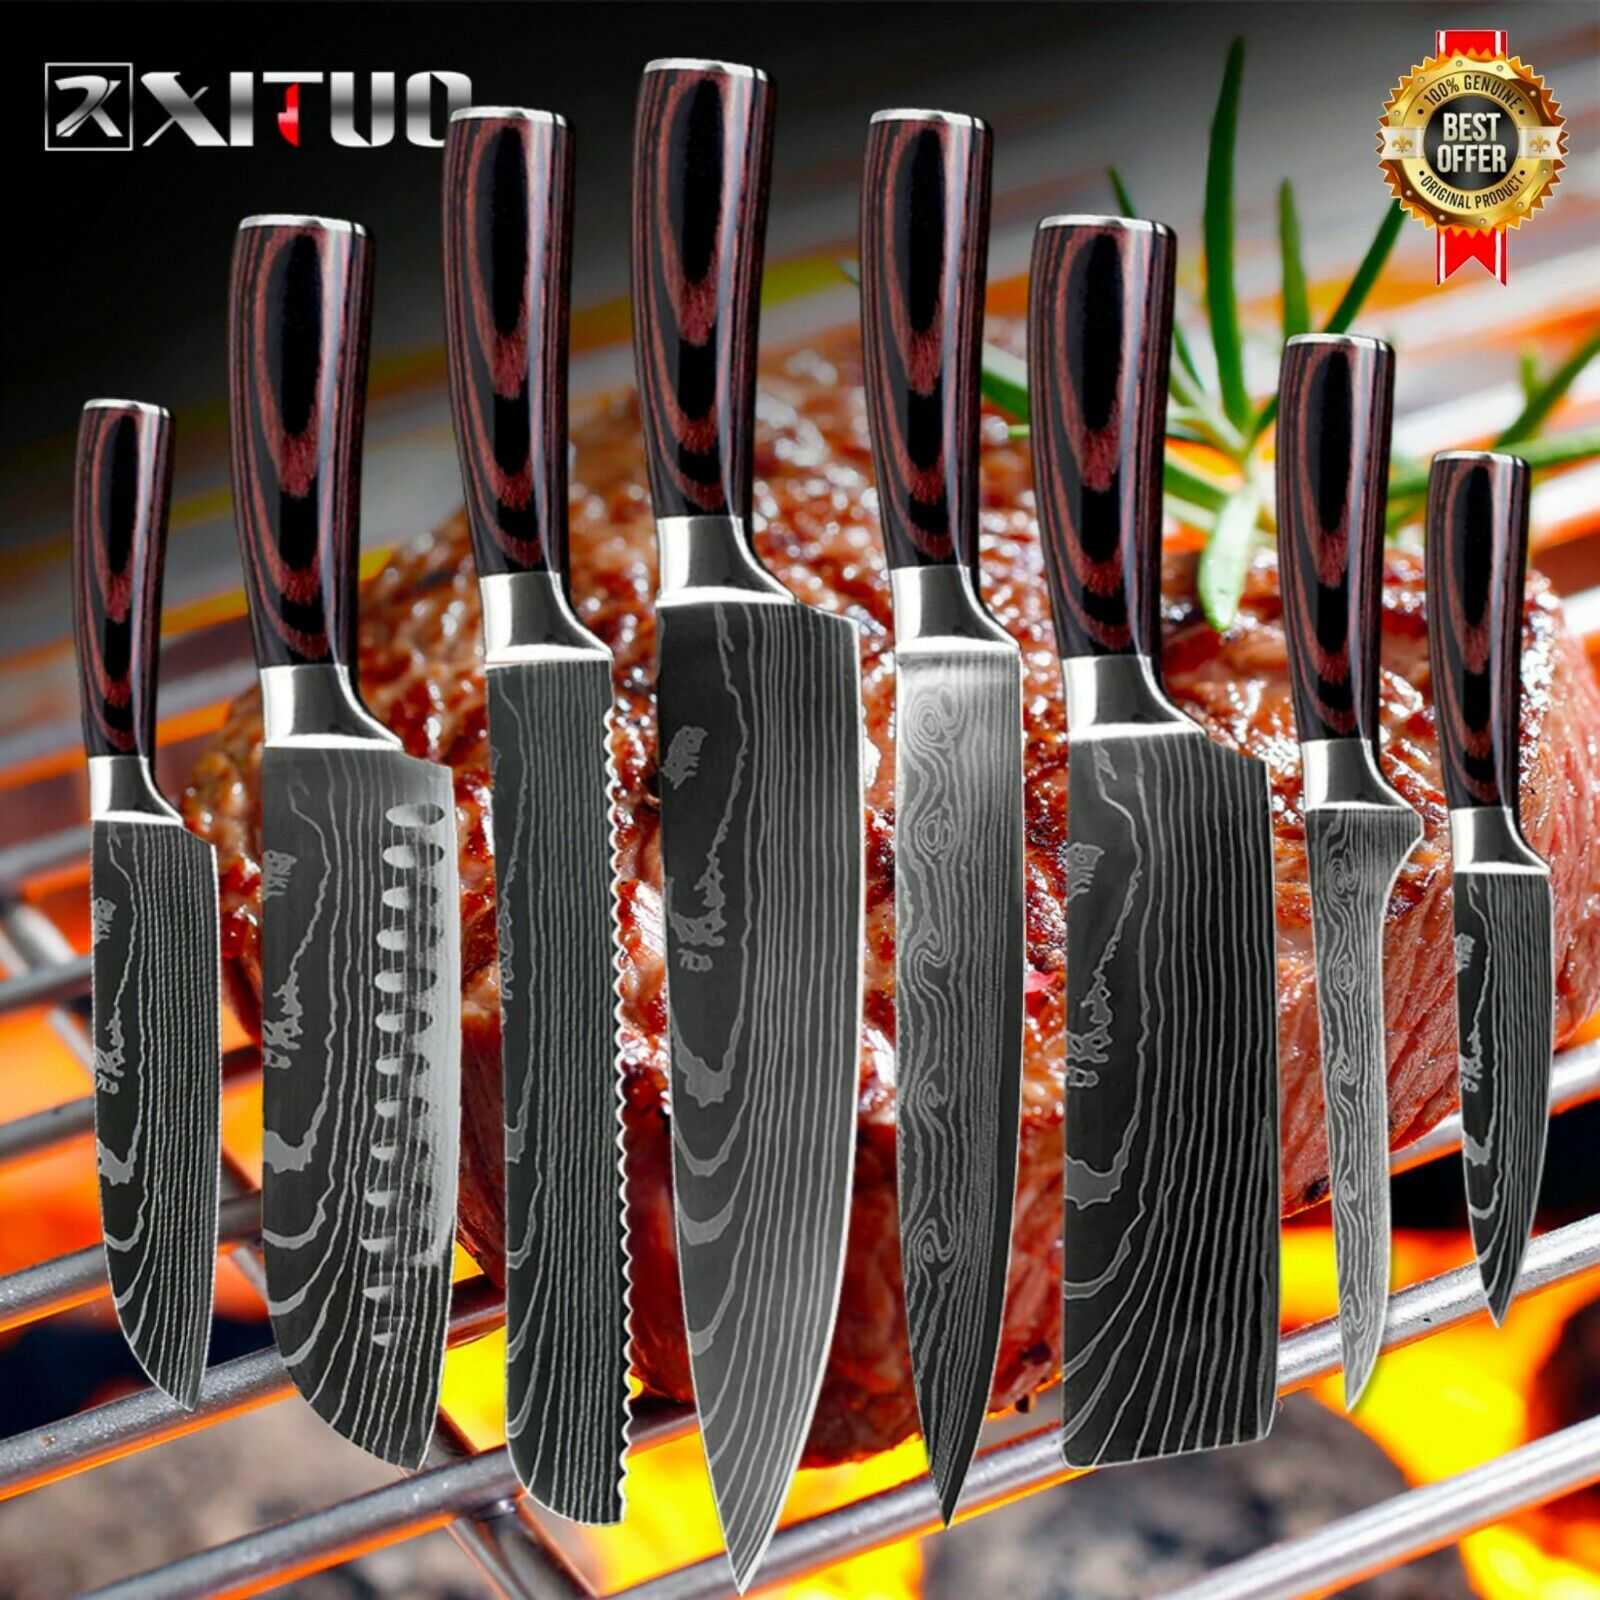 Knife Set 8 Kitchen Chef Japanese Damascus Steel Knives Sharp Cleaver Gift Knife